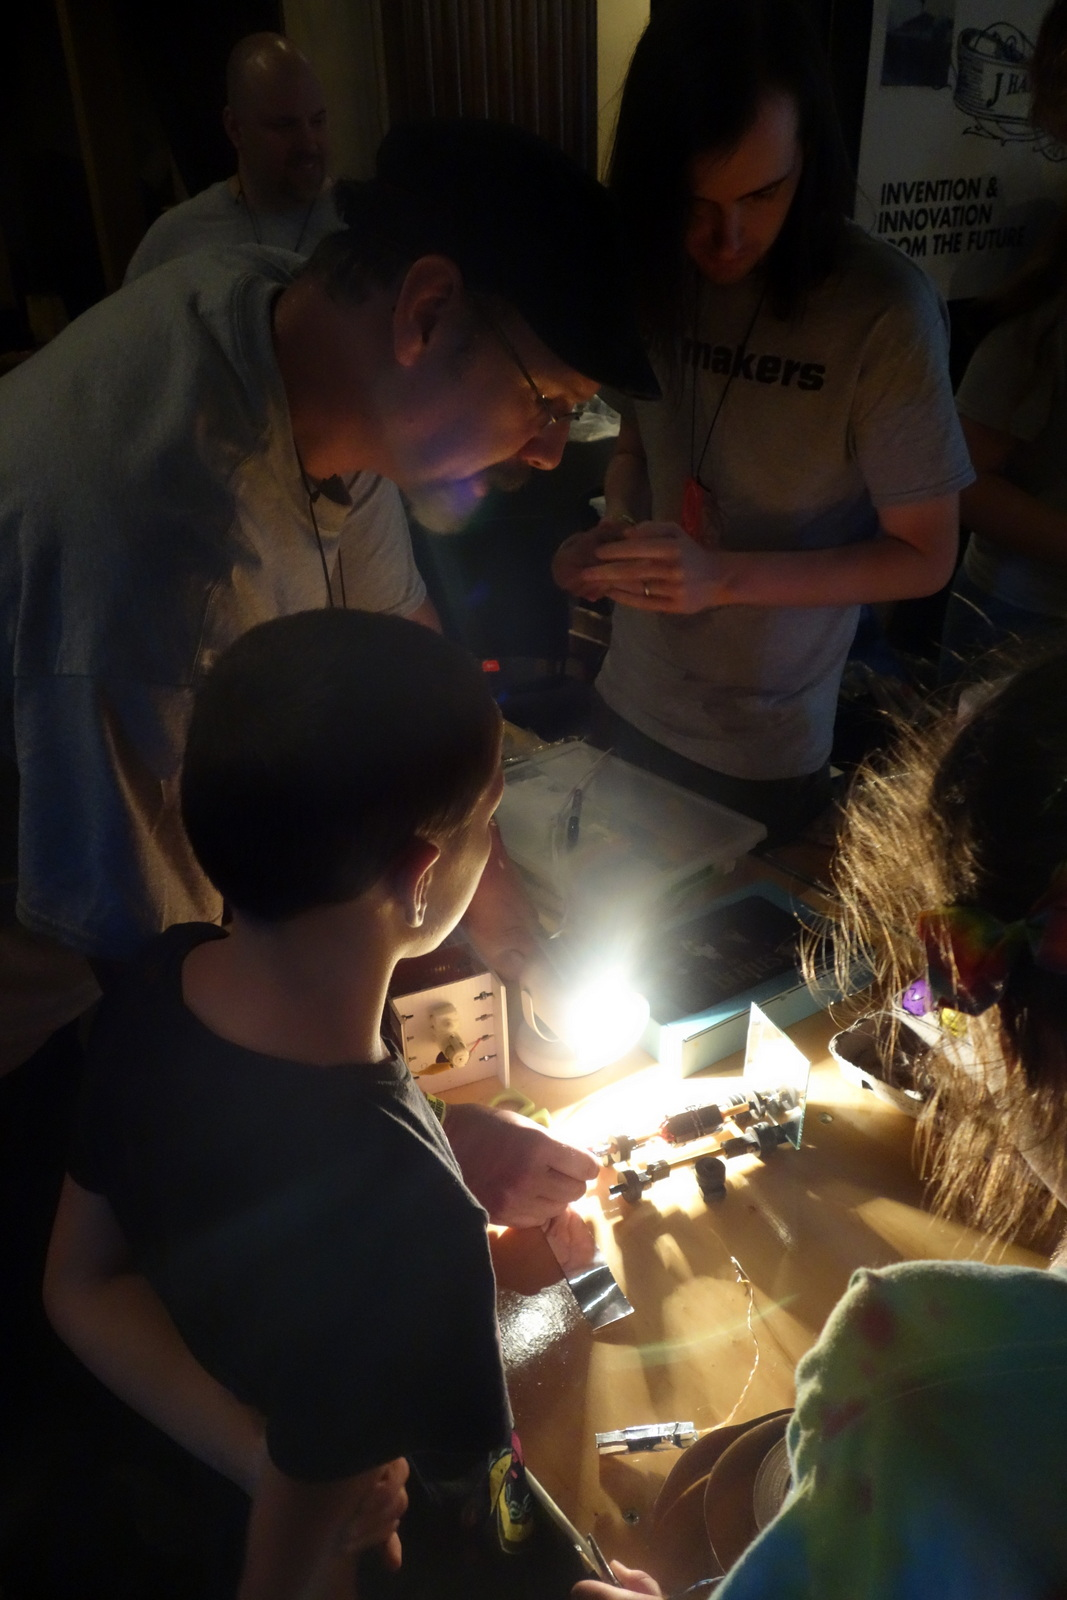 Chris Connors and company from Cape Cod Makers demonstrate their projects for curious kids.